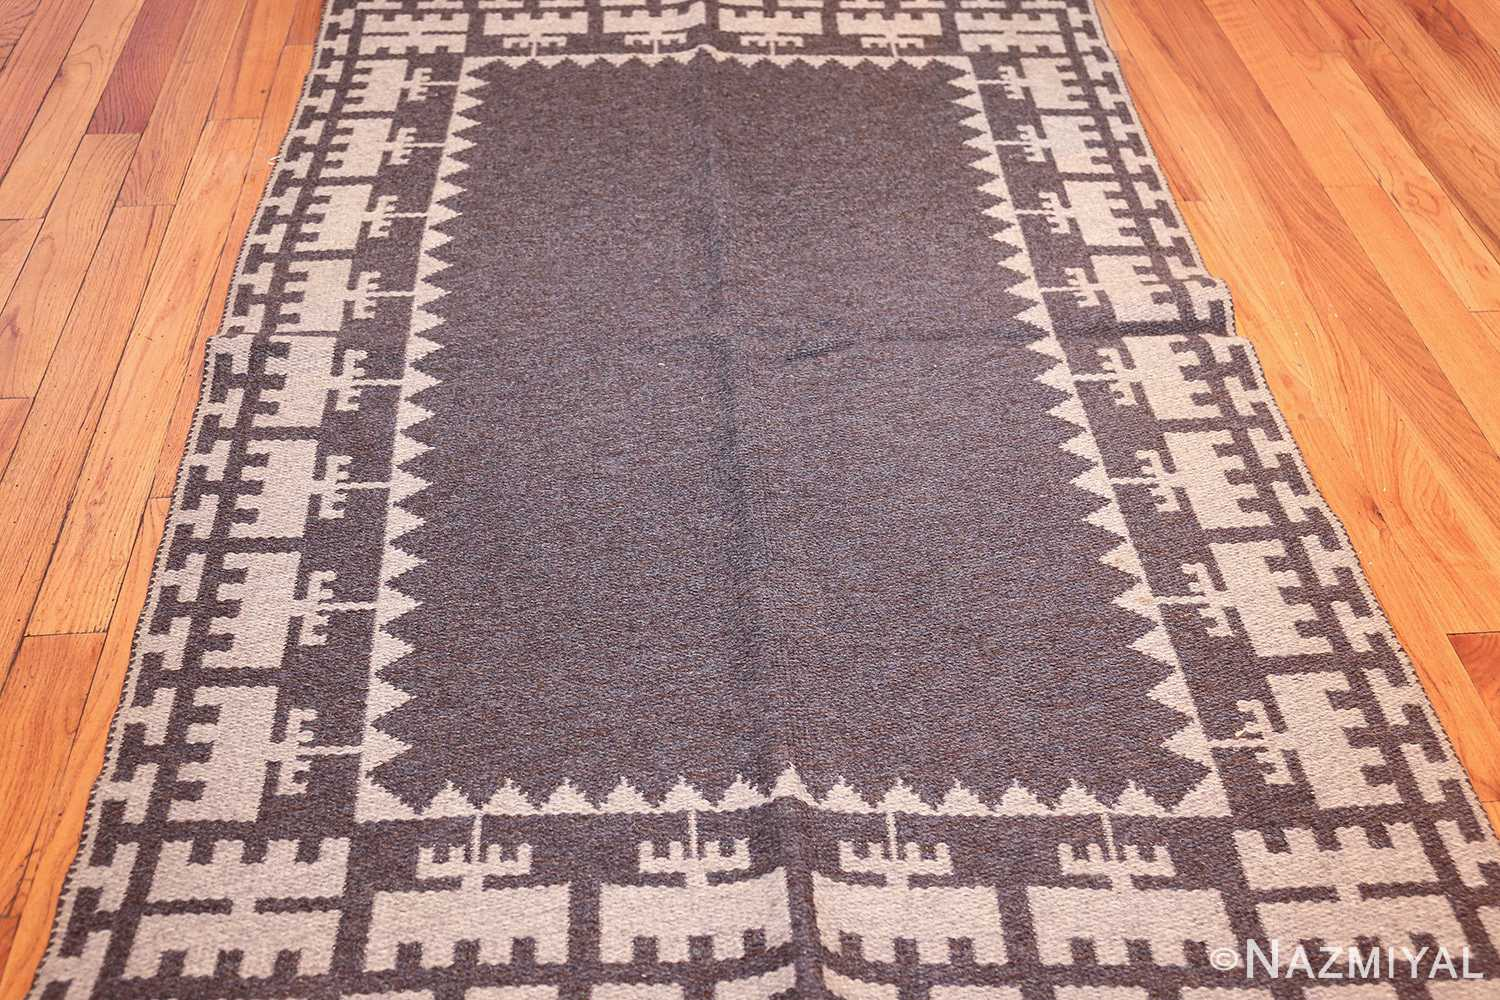 double sided vintage mid century scandinavian swedish kilim 48606 dark full side Nazmiyal